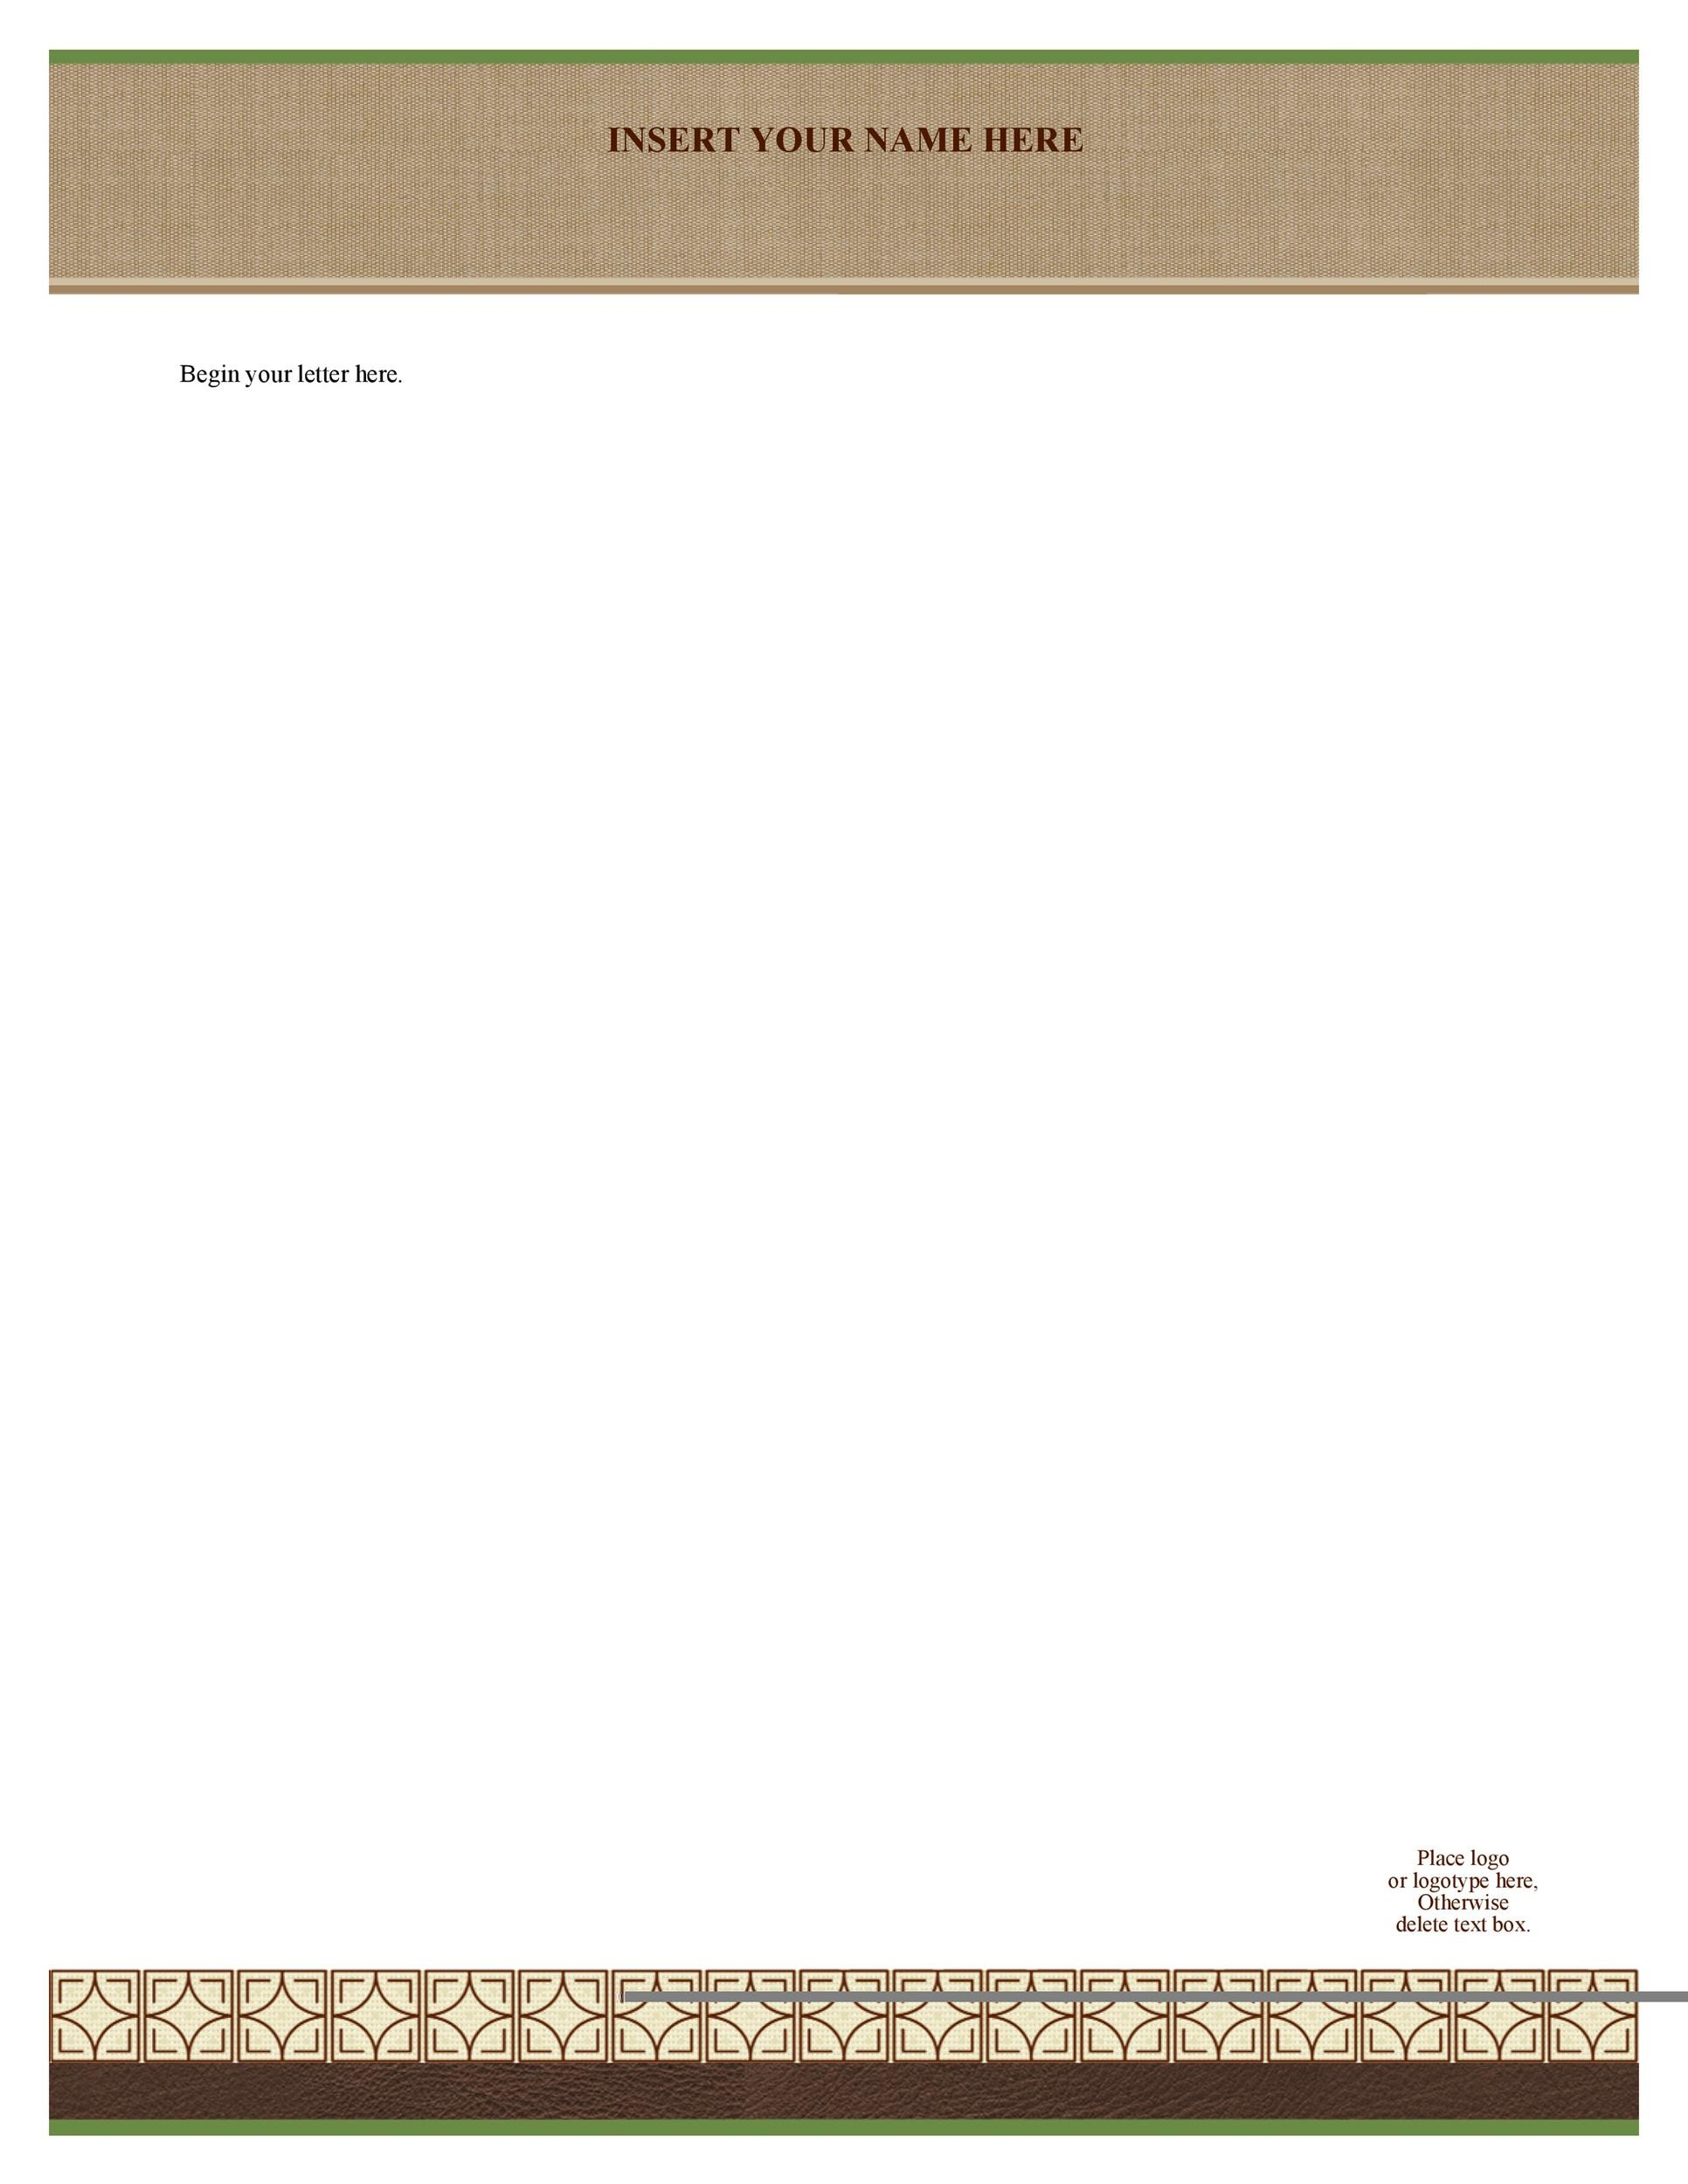 45+ Free Letterhead Templates  Examples (Company, Business, Personal) - Free Letterhead Samples